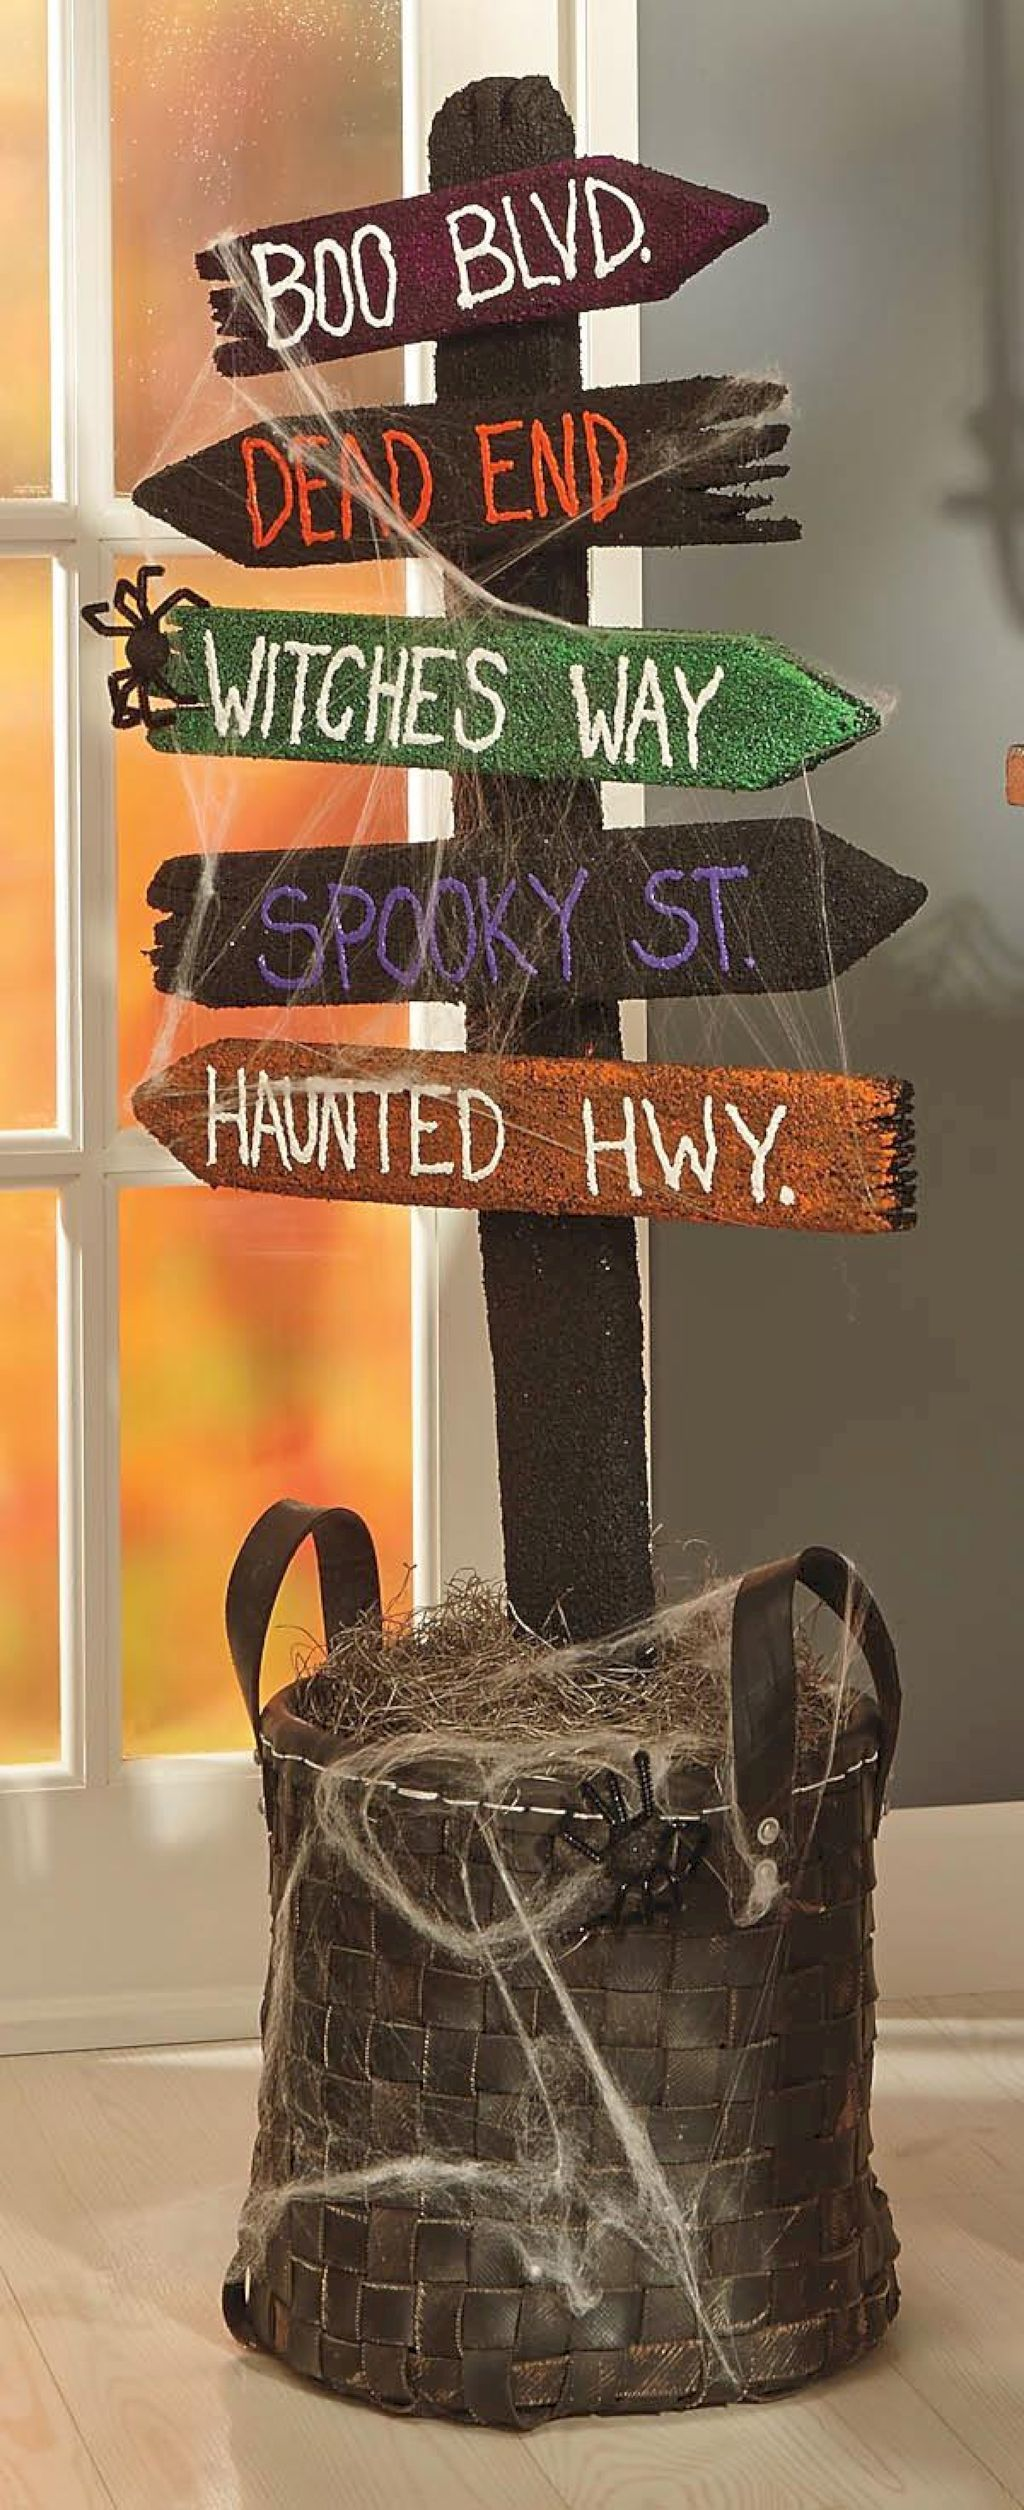 25 Wicked Halloween Home Decor Ideas Wicked, Halloween ideas and - Decorating For Halloween